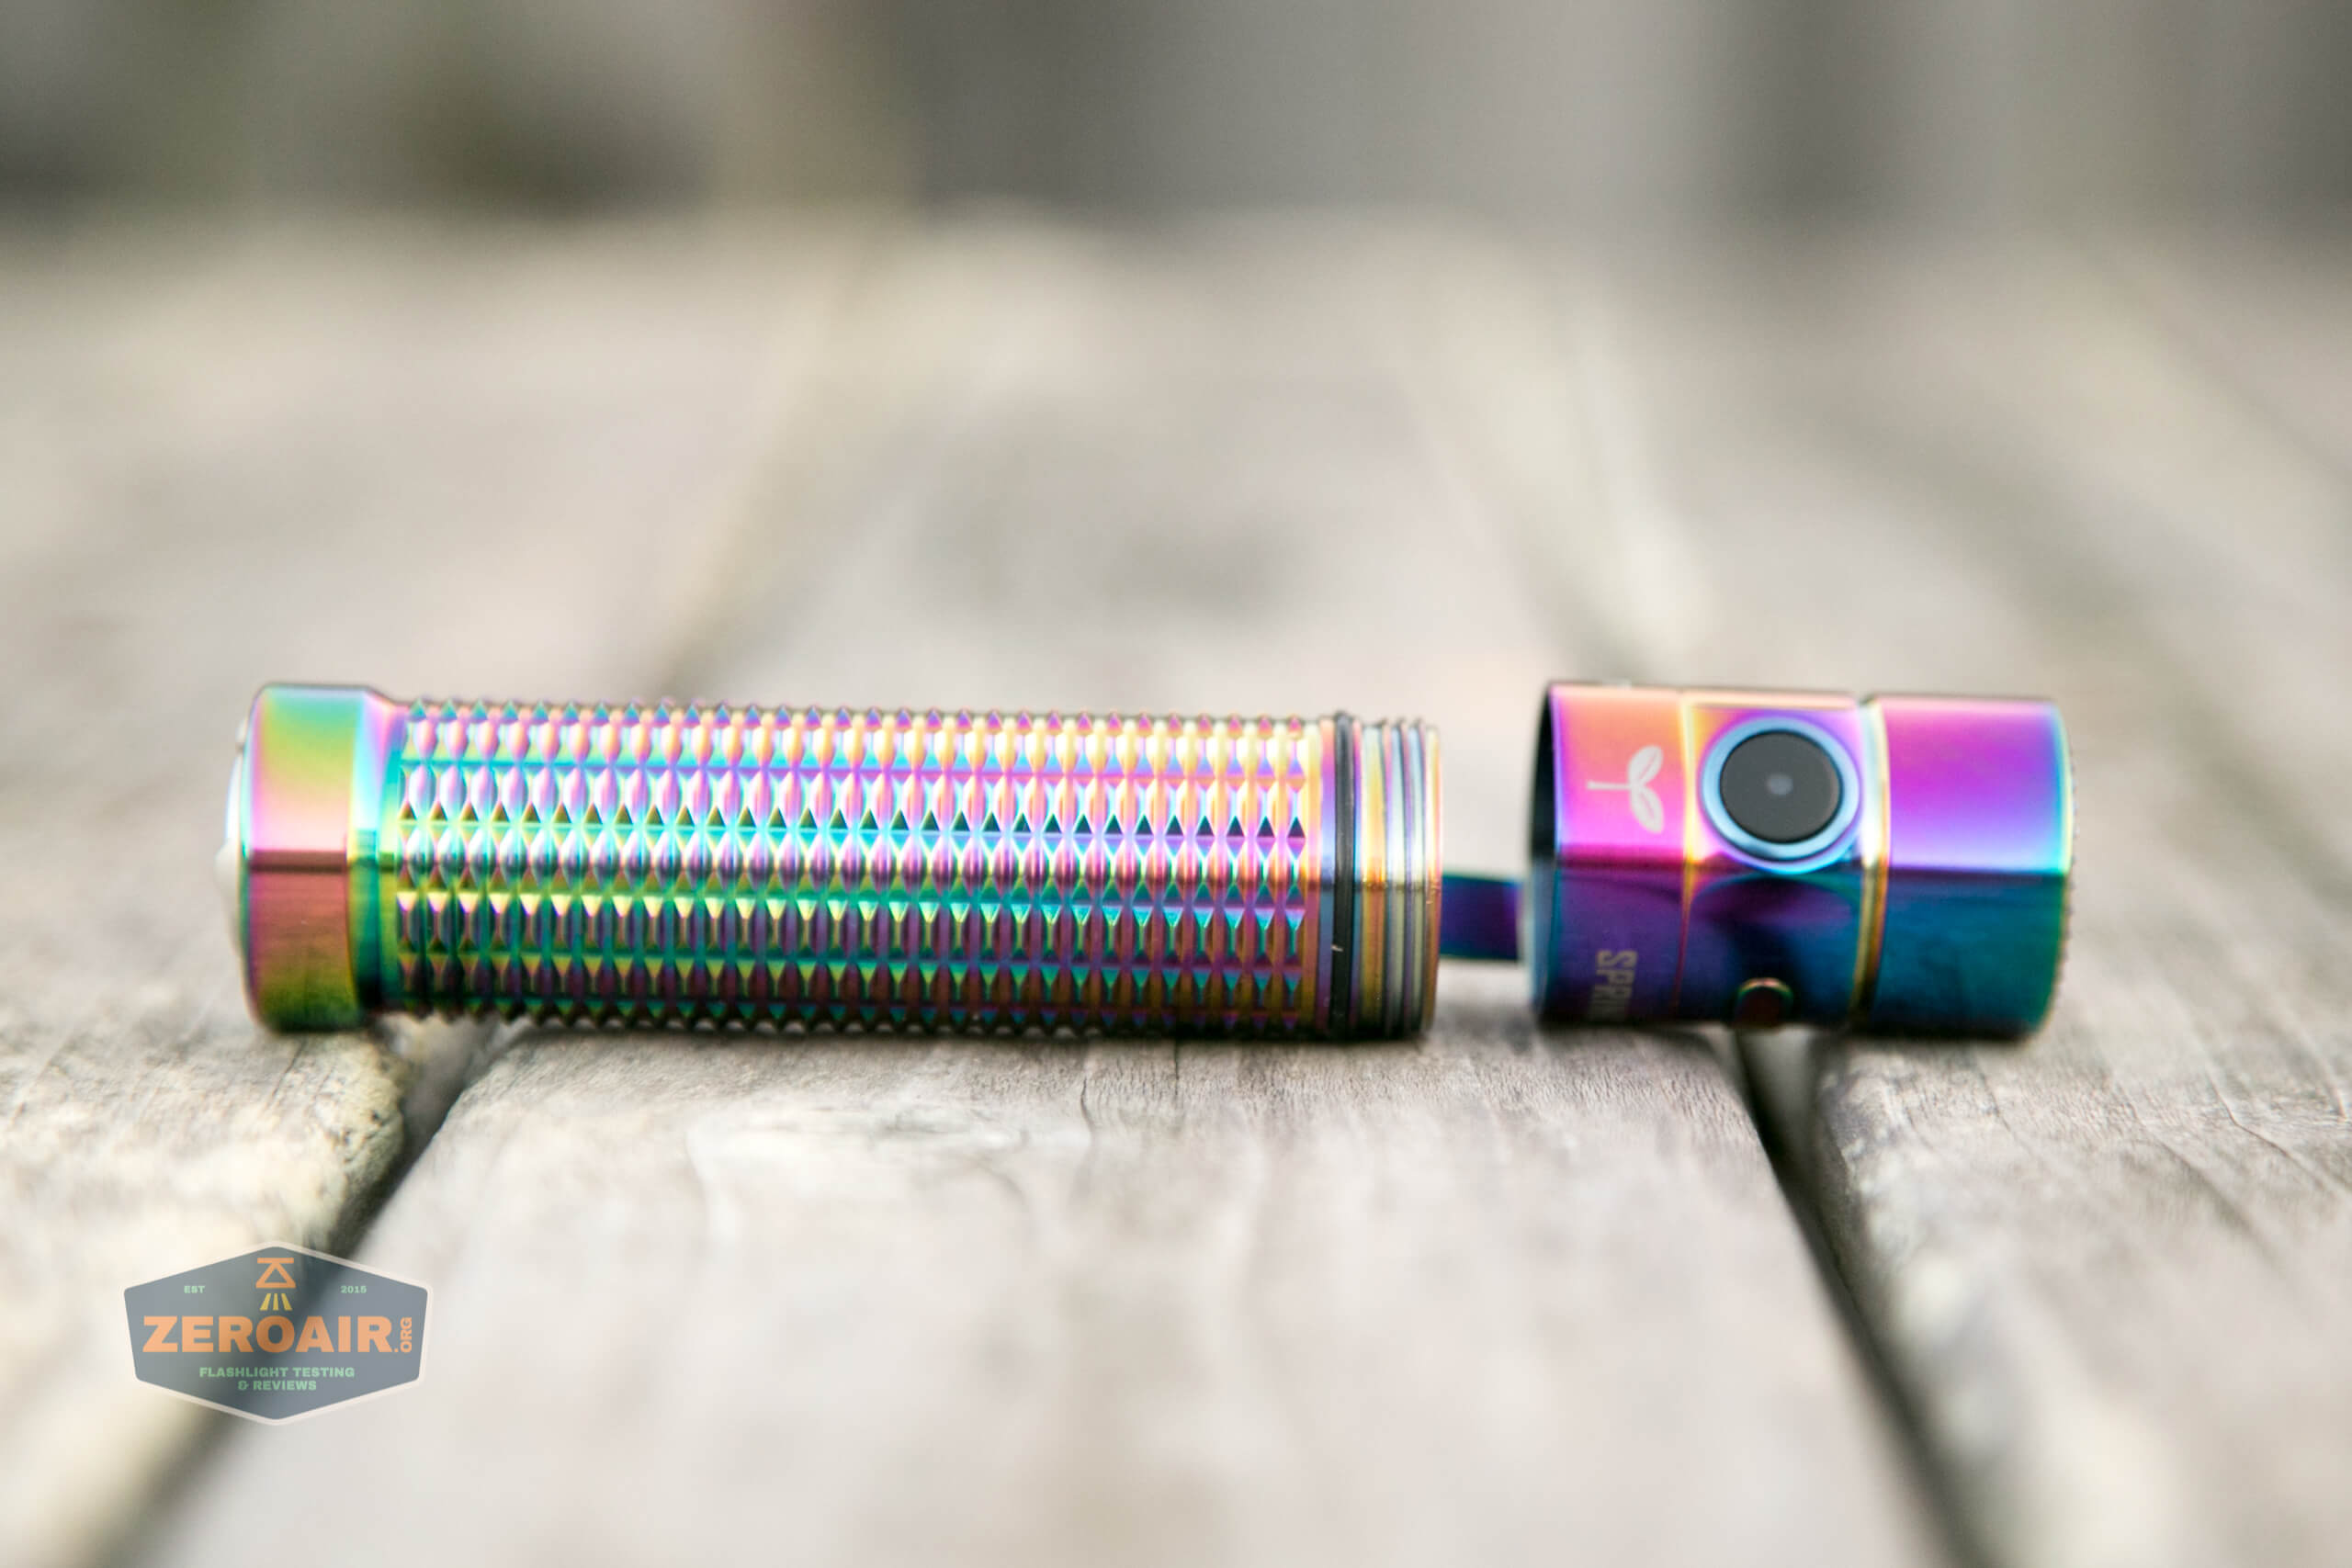 olight warrior mini rainbow spring 2 led flashlight open showing threads